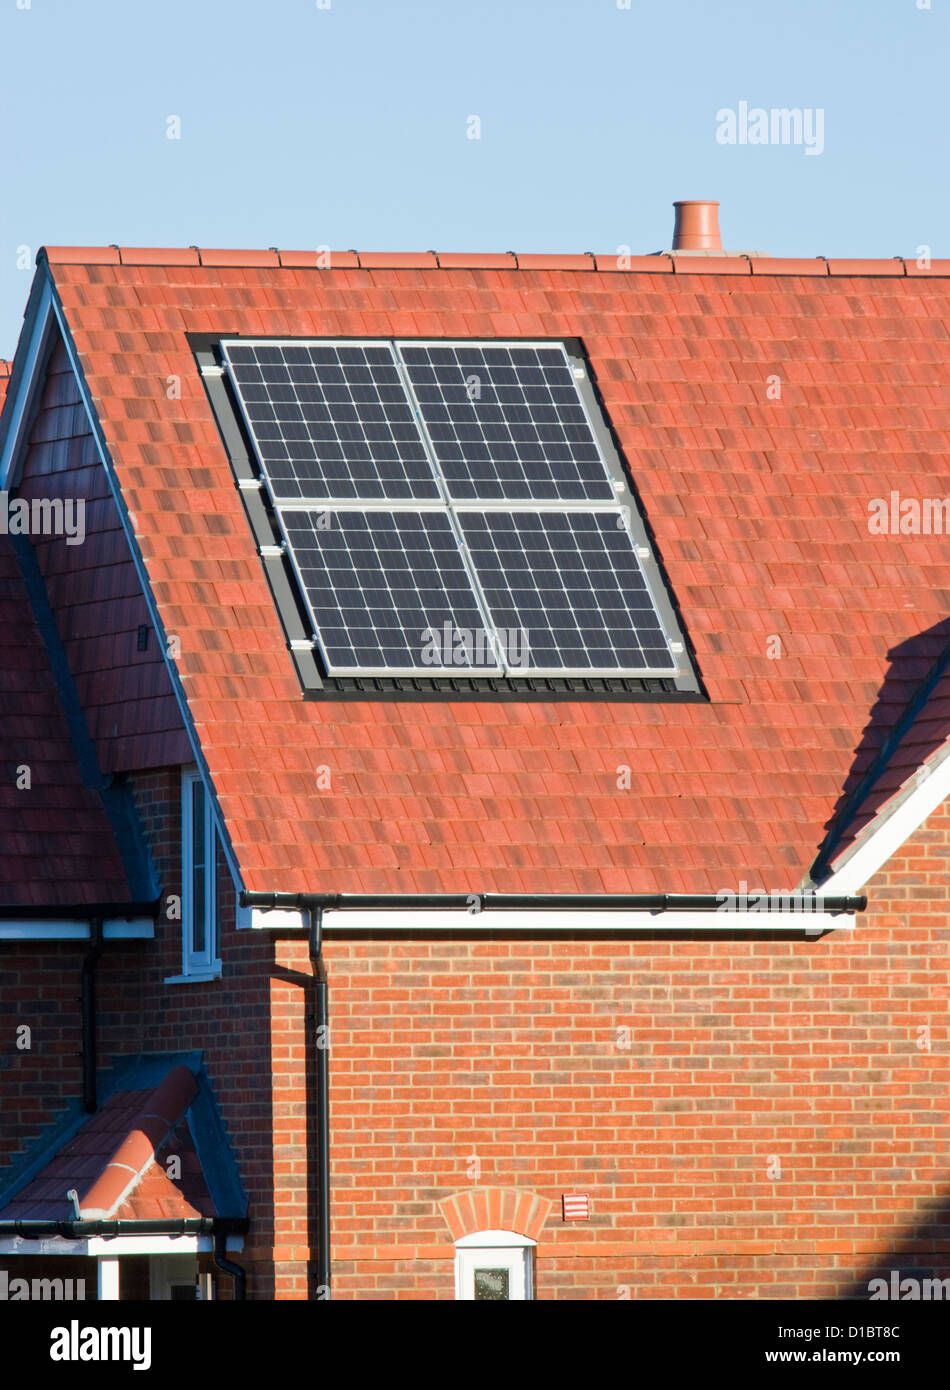 Solar panel on house roof. - Stock Image